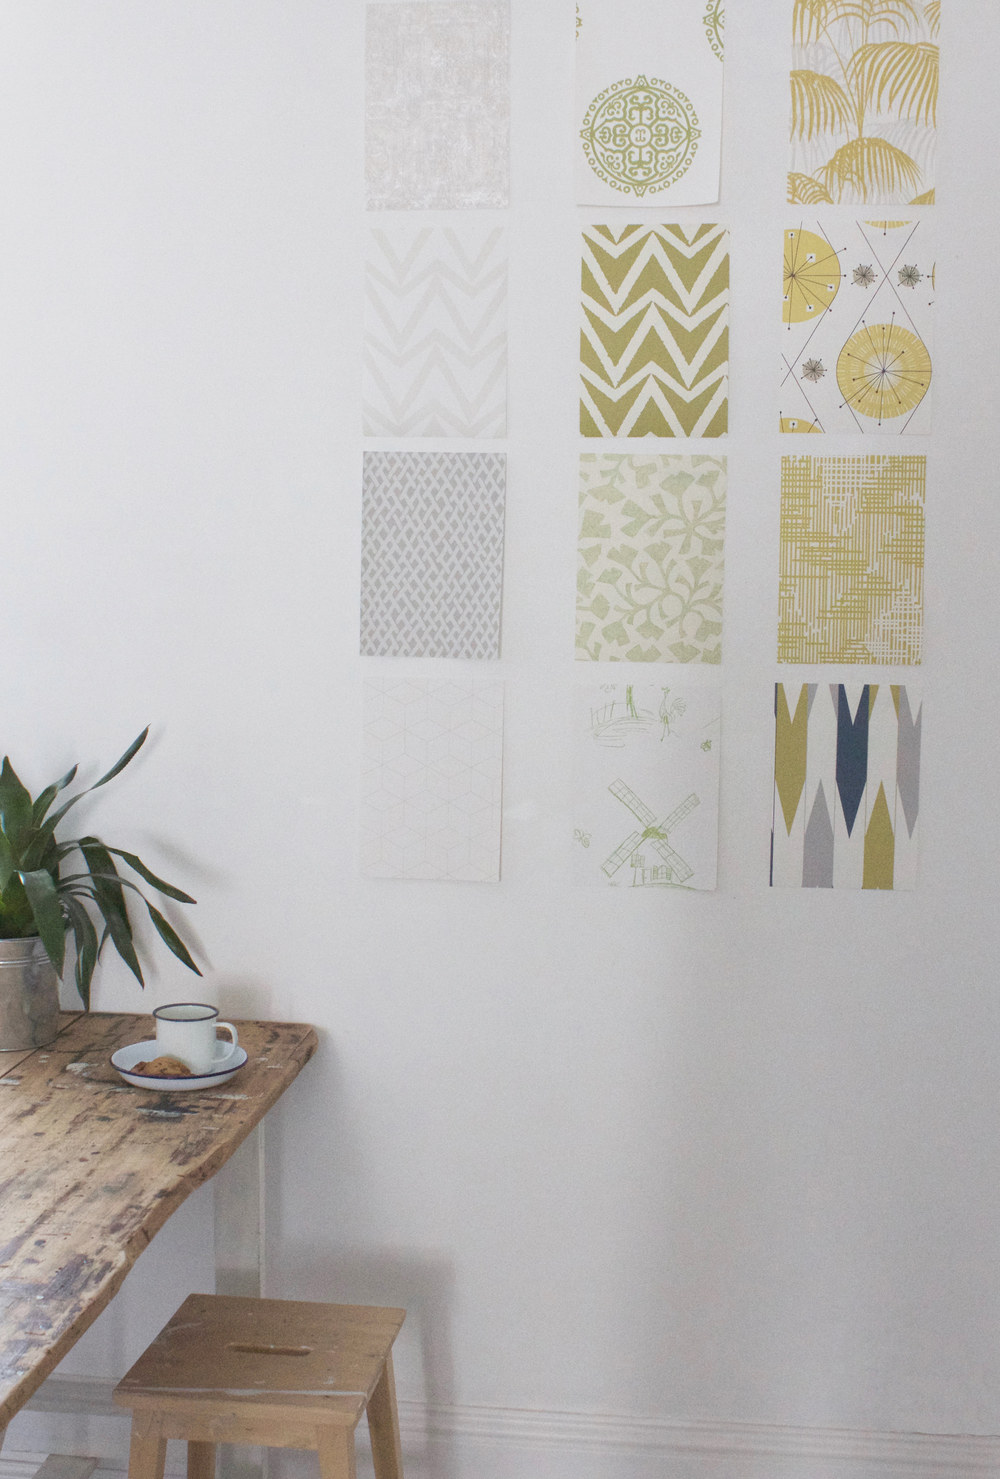 wallpaper samples wall art, tutorial by Hester's handmade home